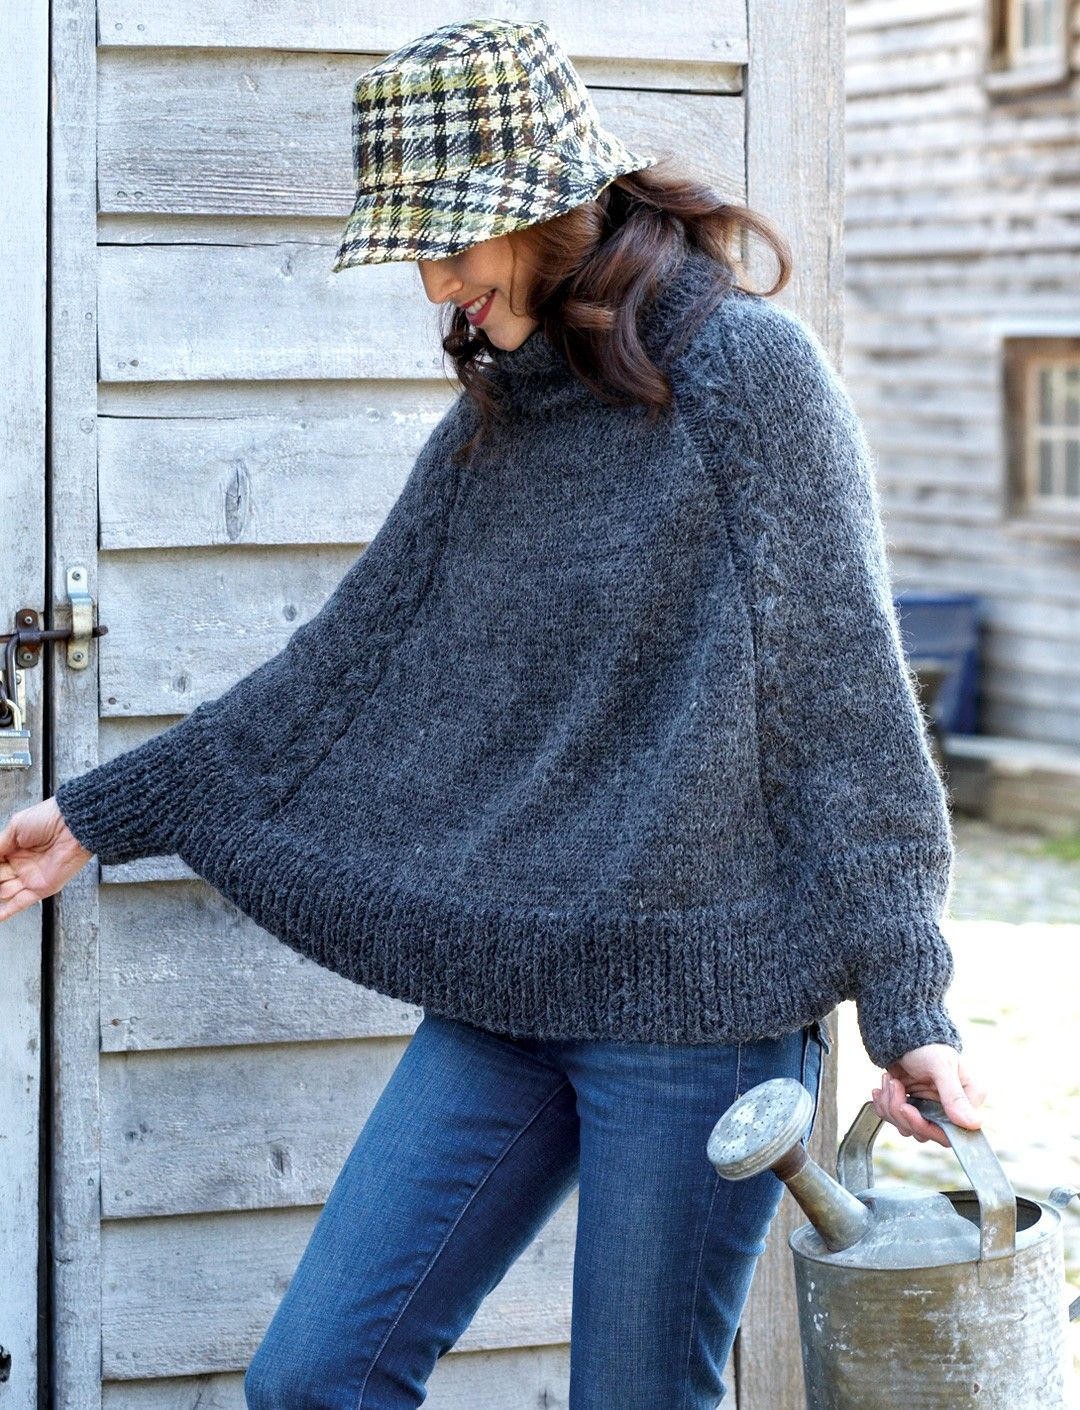 Yarnspirations bernat cape with cables patterns yarnspirations bernat cape with cables patterns yarnspirations bankloansurffo Gallery